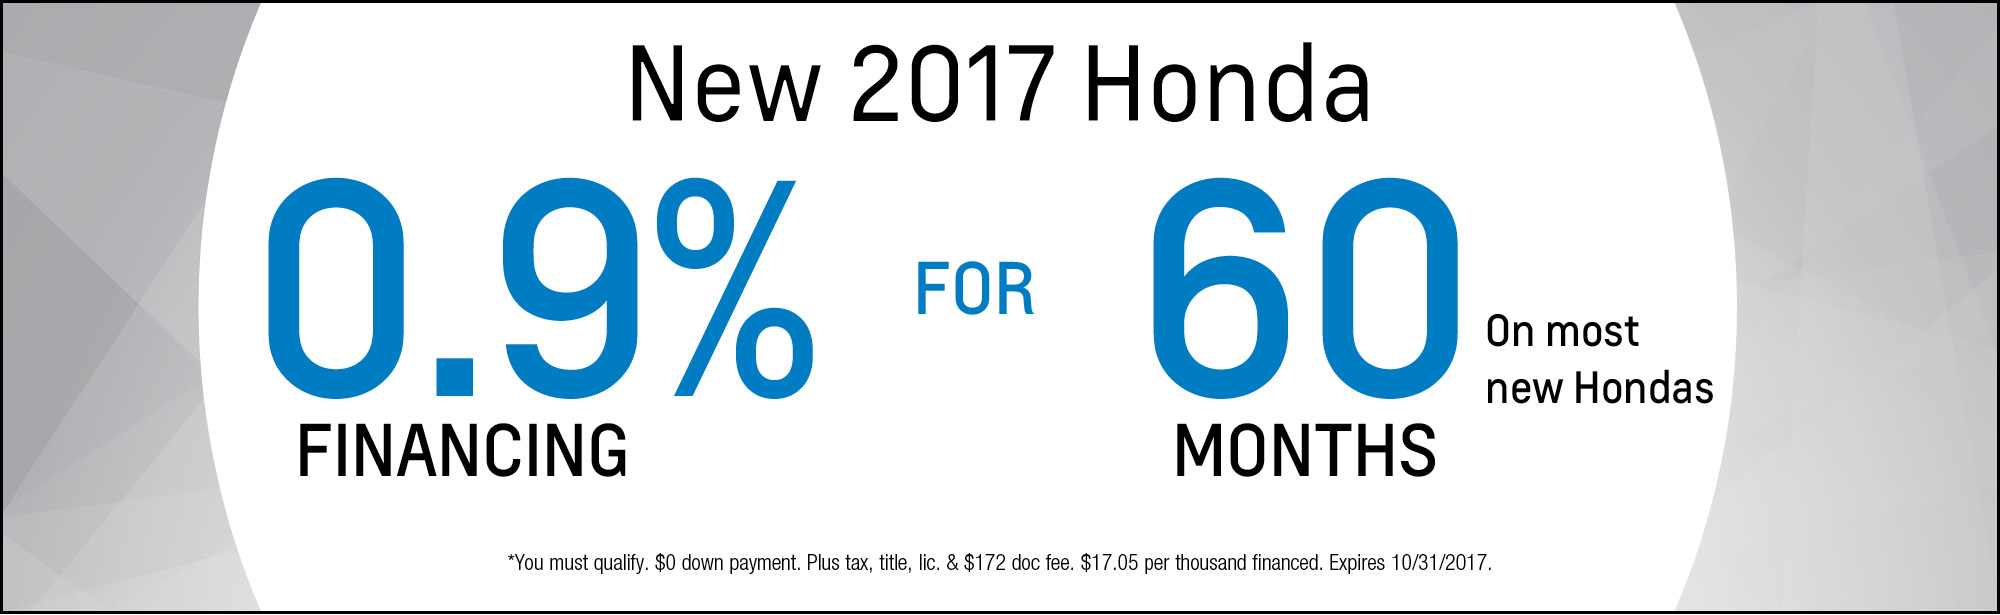 New 2017 Honda Special Financing Offer in Chicago, IL